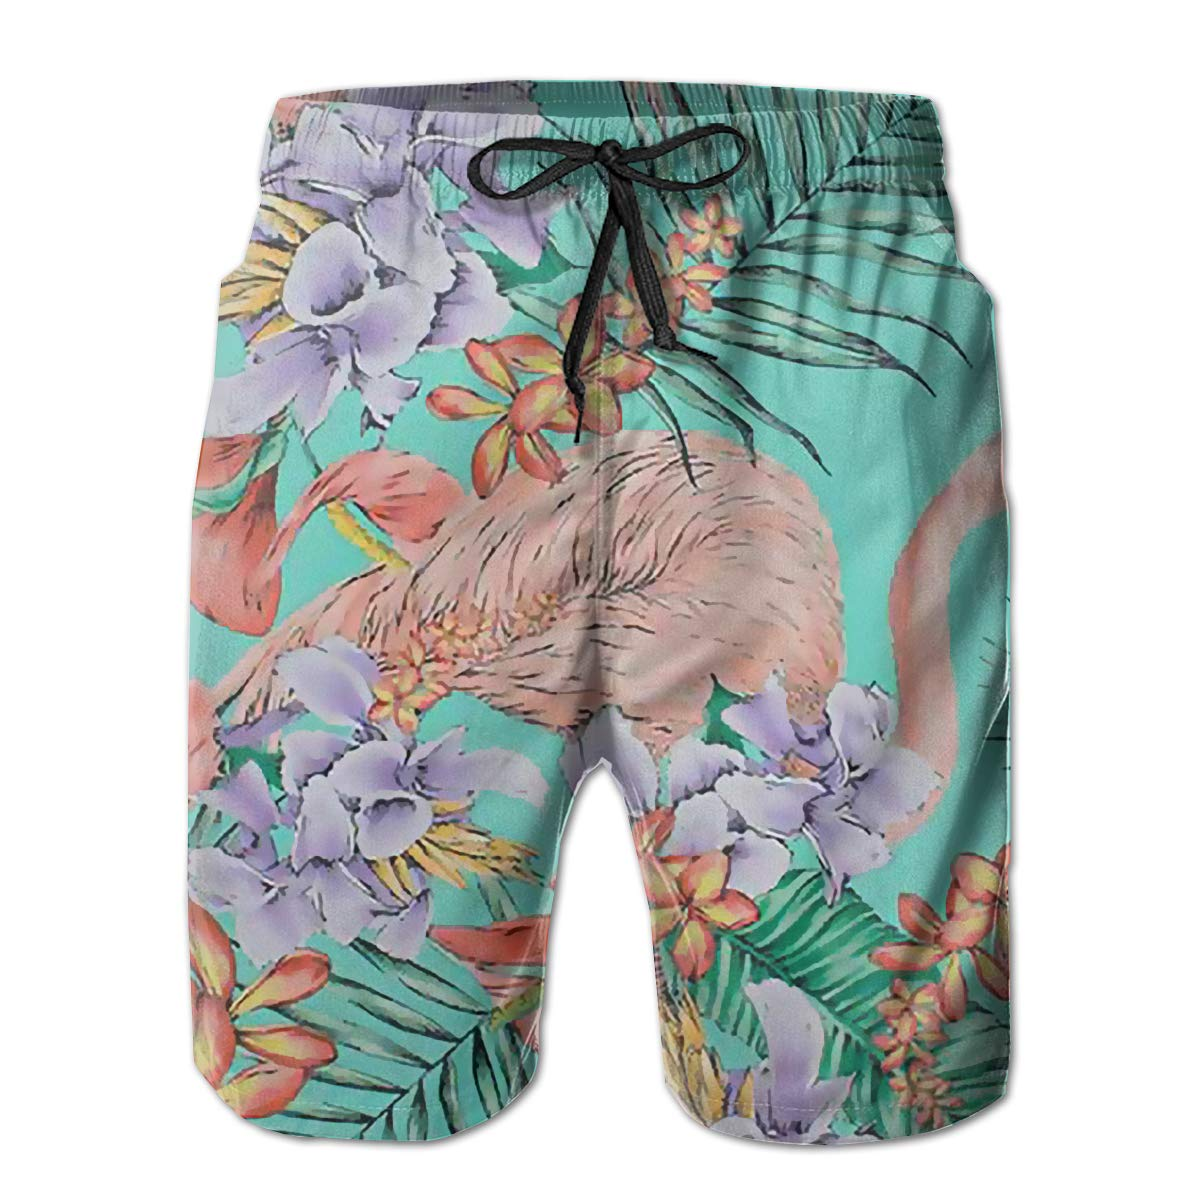 BE6h Mens Summer Surf Board Shorts Quick Dry Pants with Pockets for Young Man